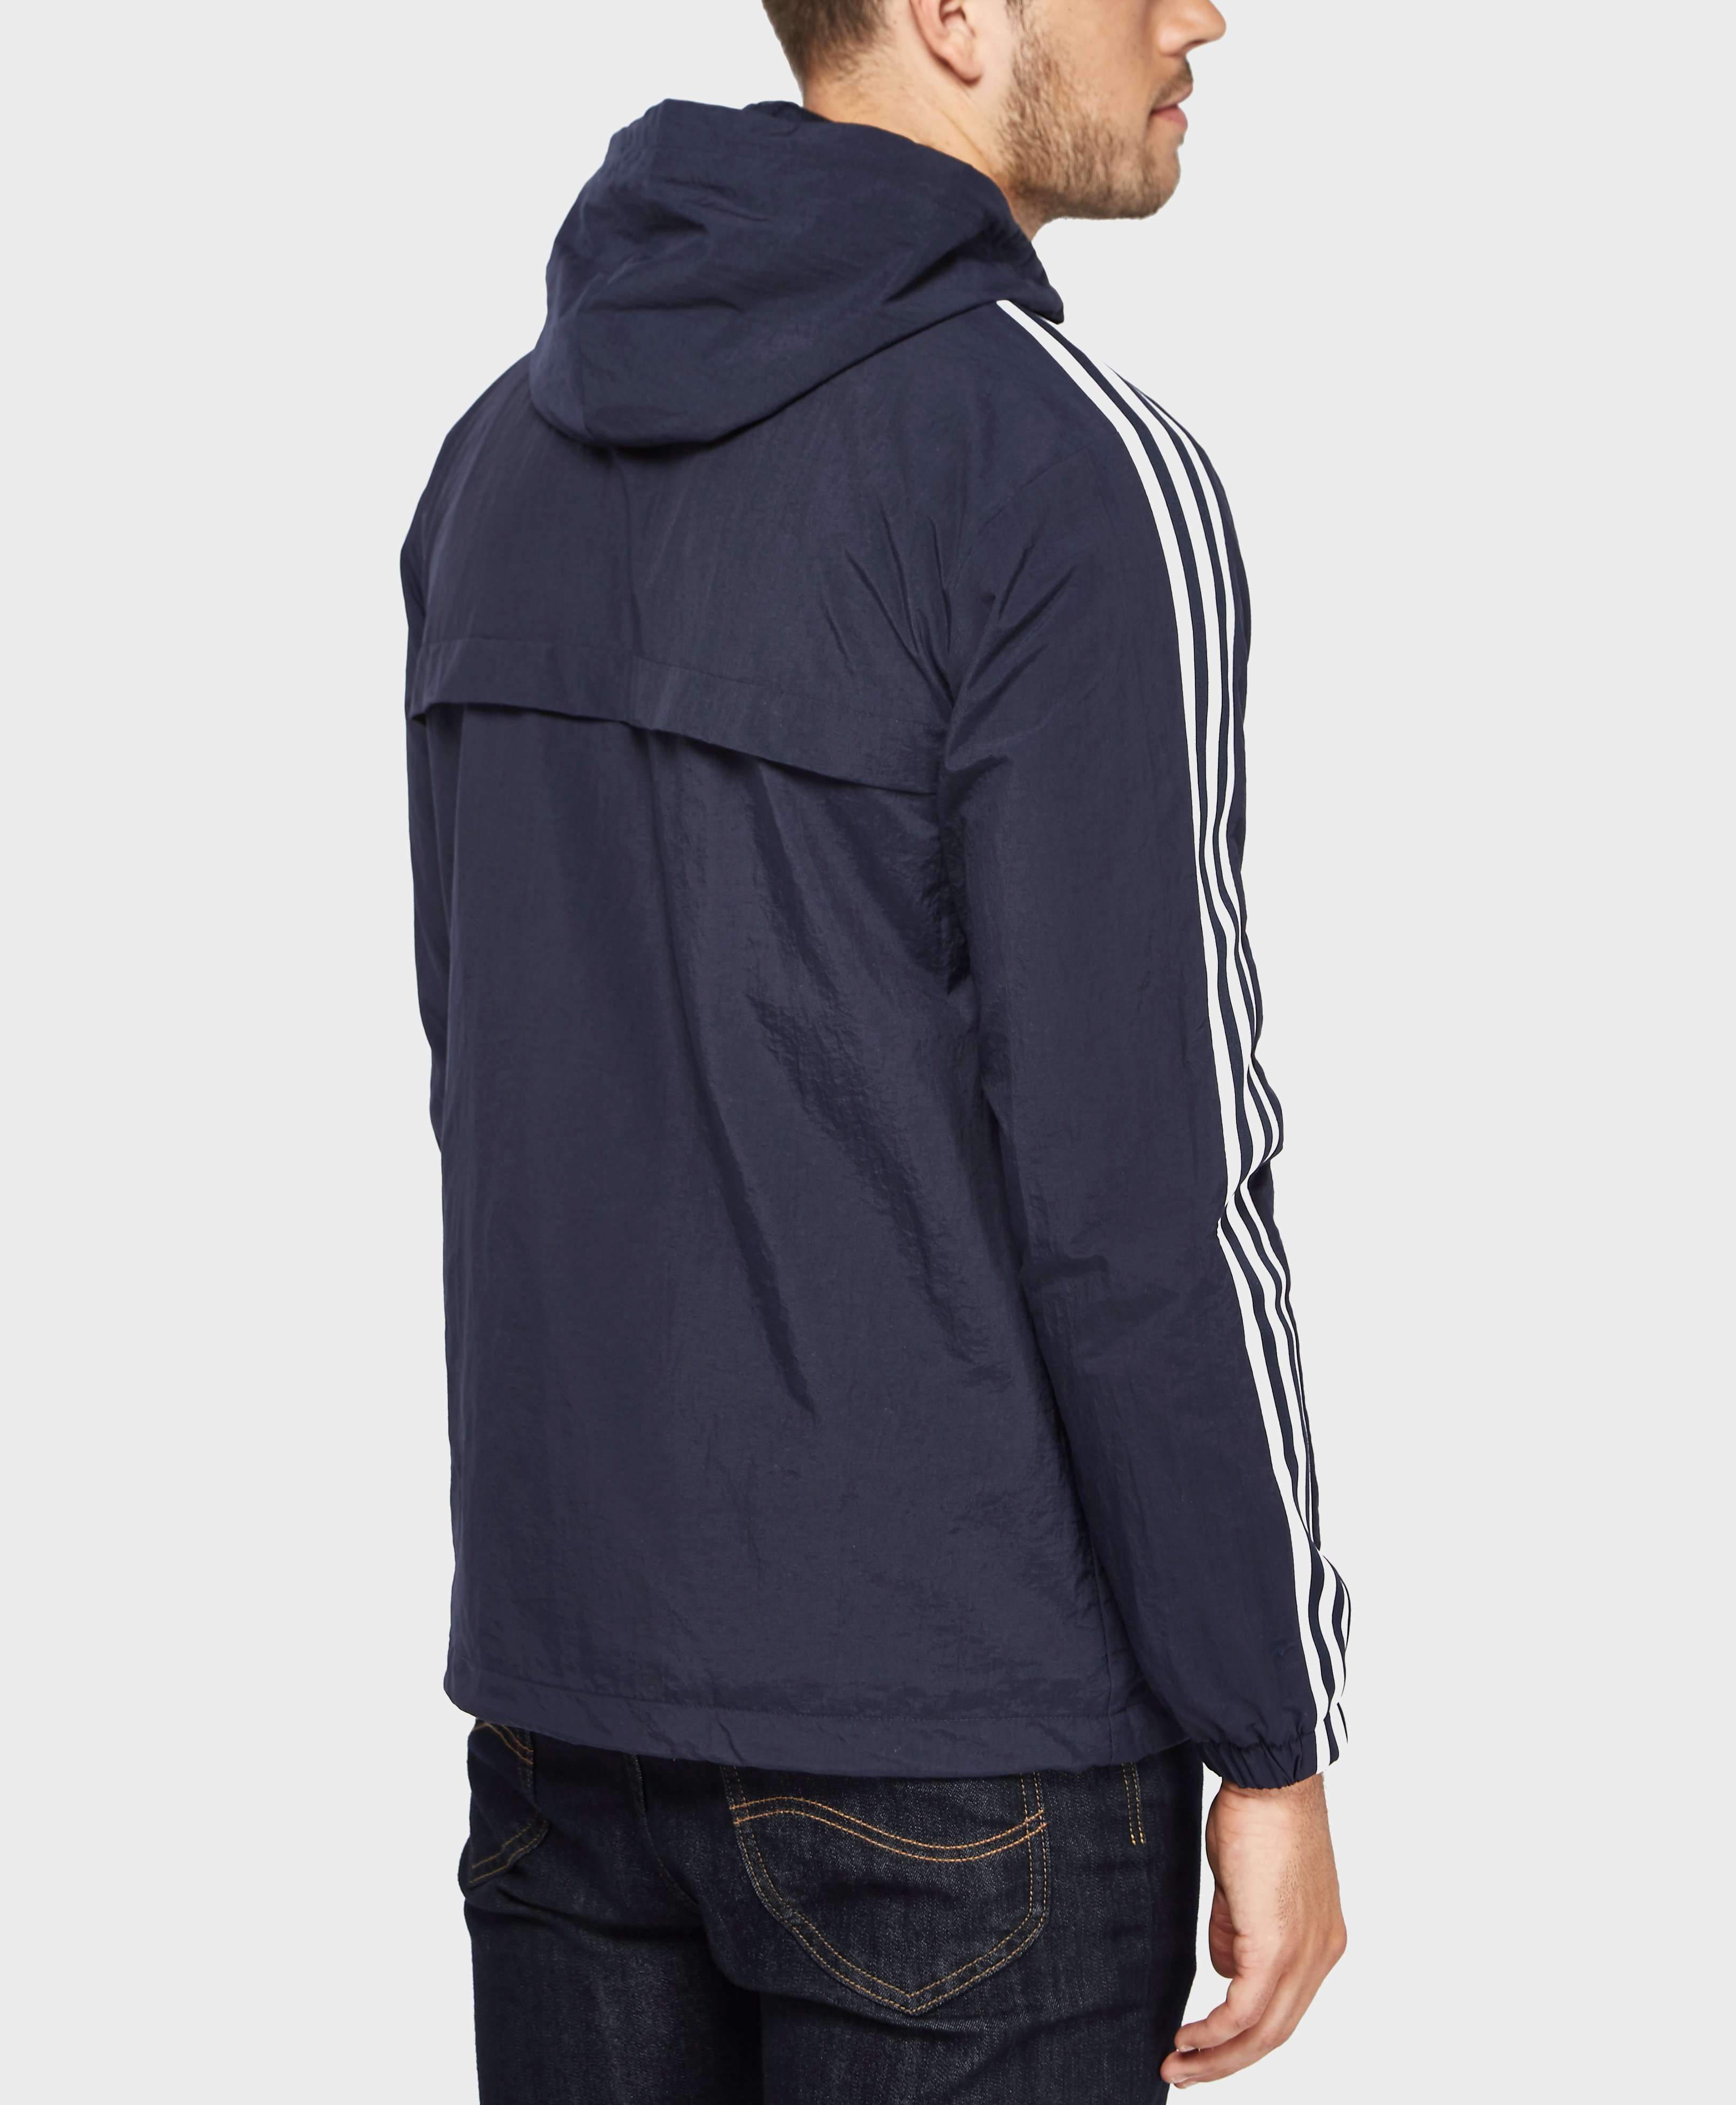 Adidas Originals 3 Stripe chaqueta ligera Scotts hombre wear